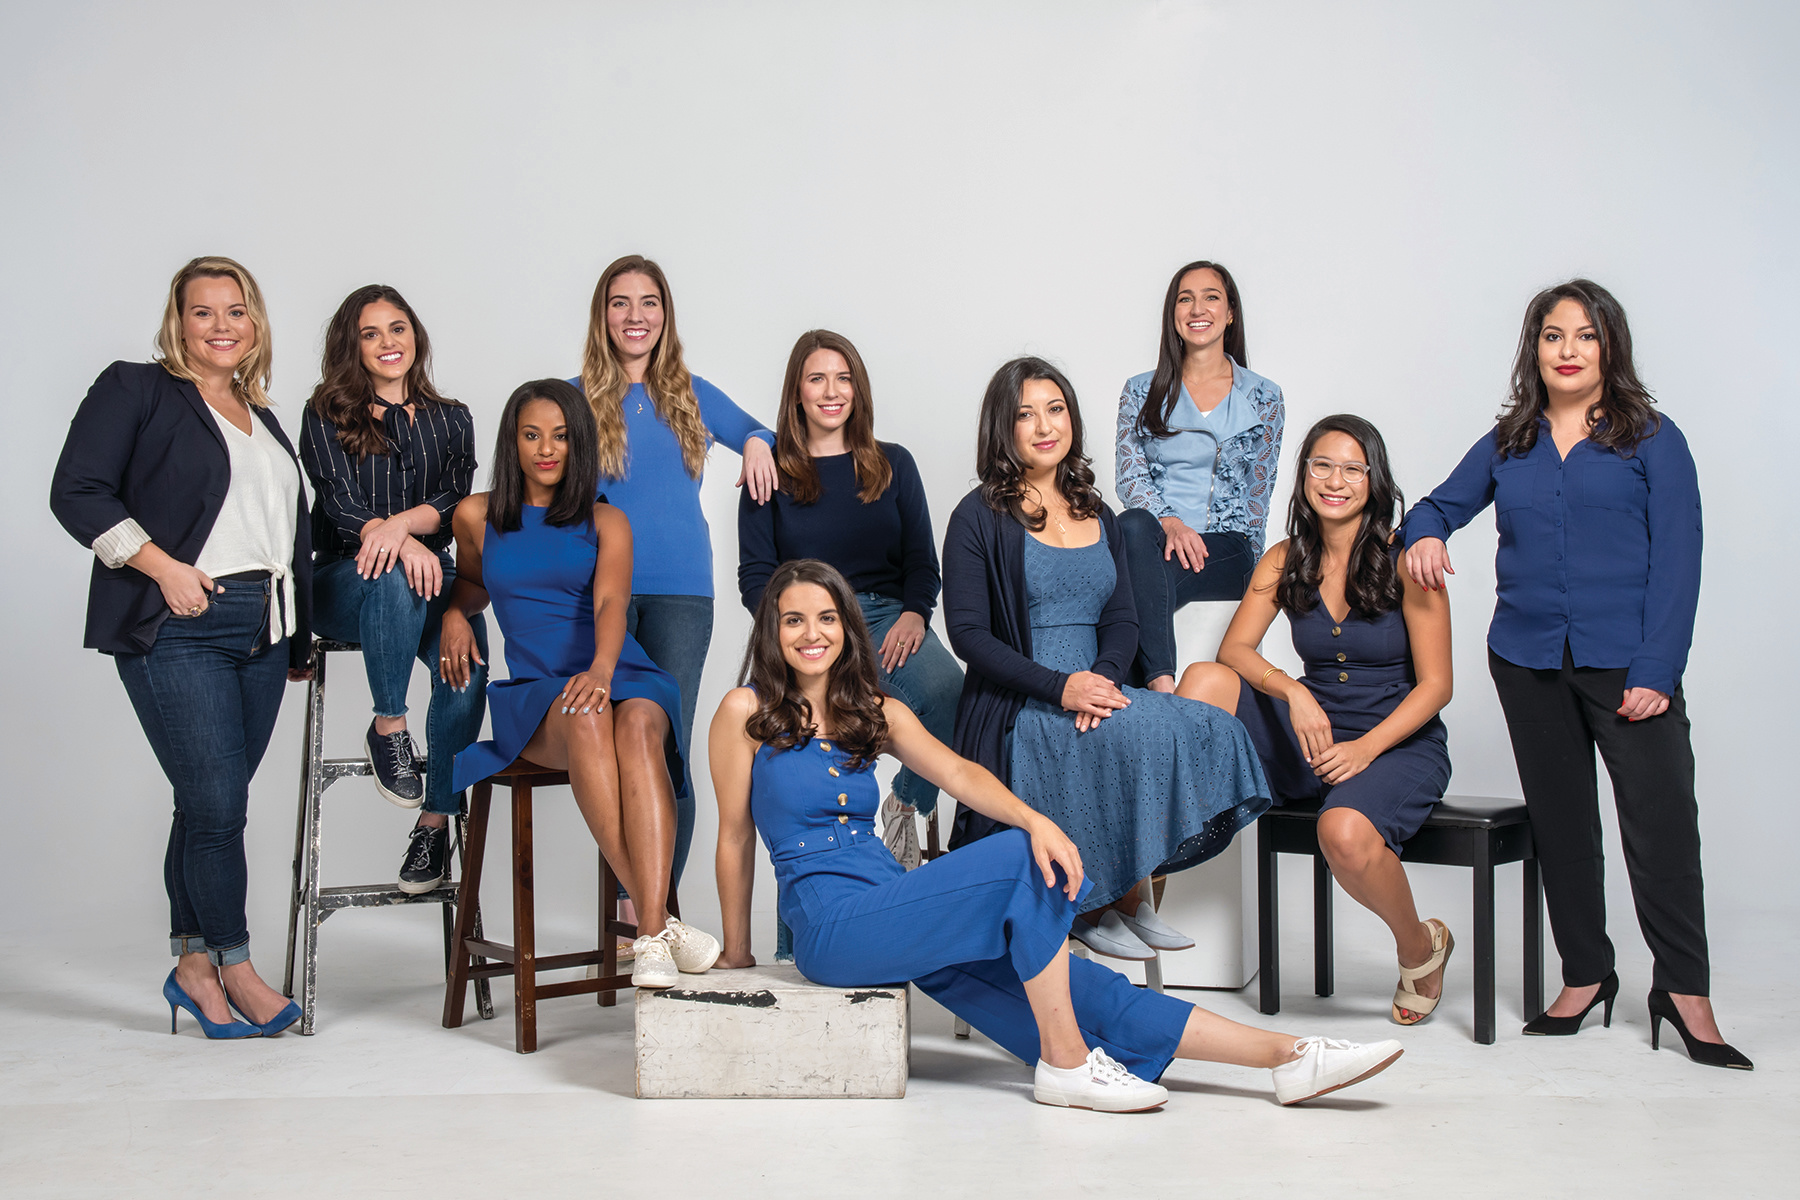 The authors of Yes She Can